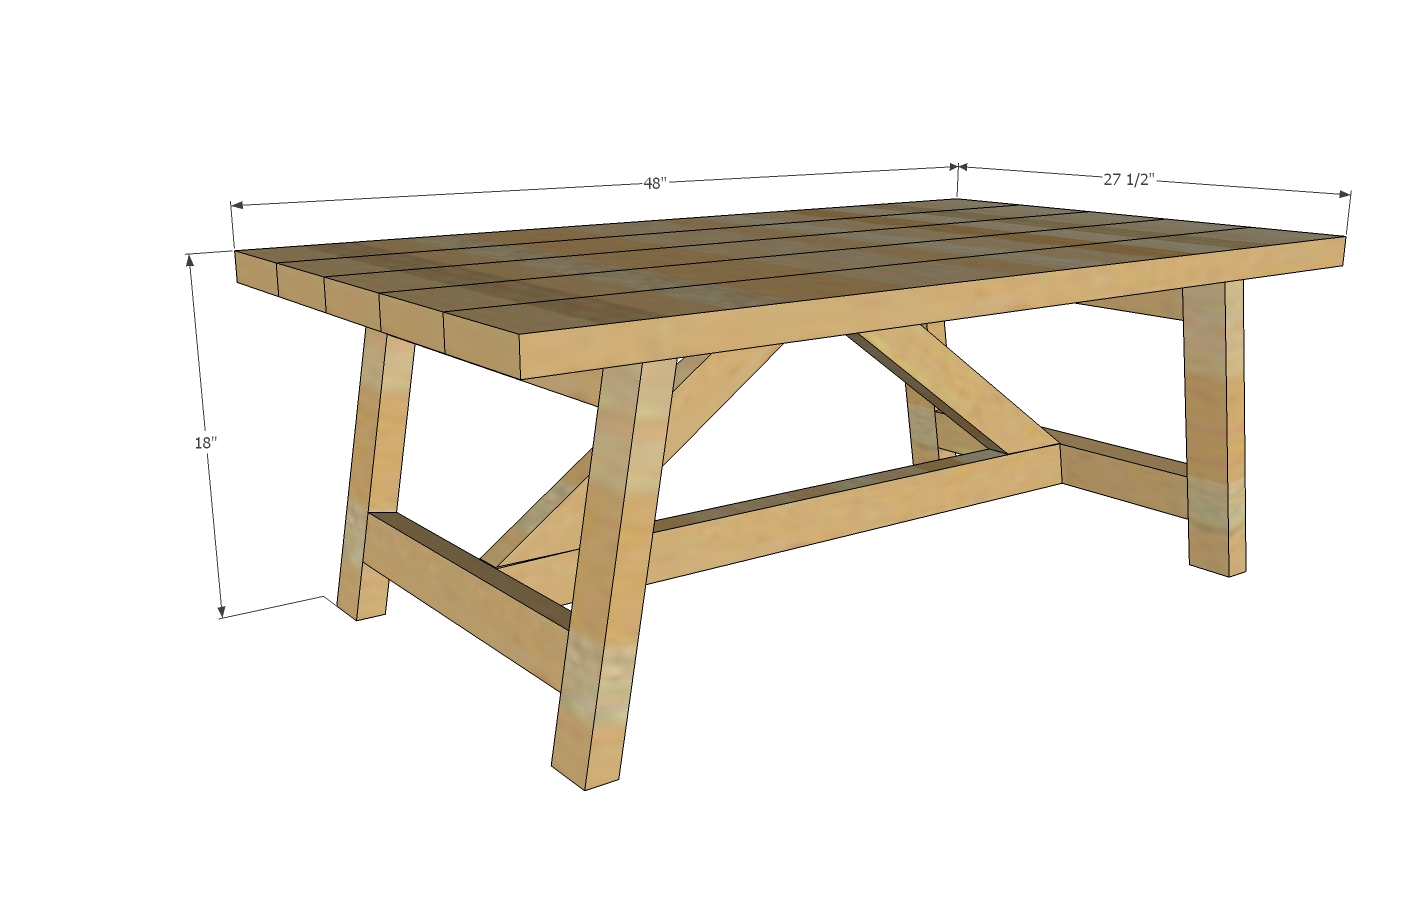 woodworking plans for octagon picnic table | Quick ...